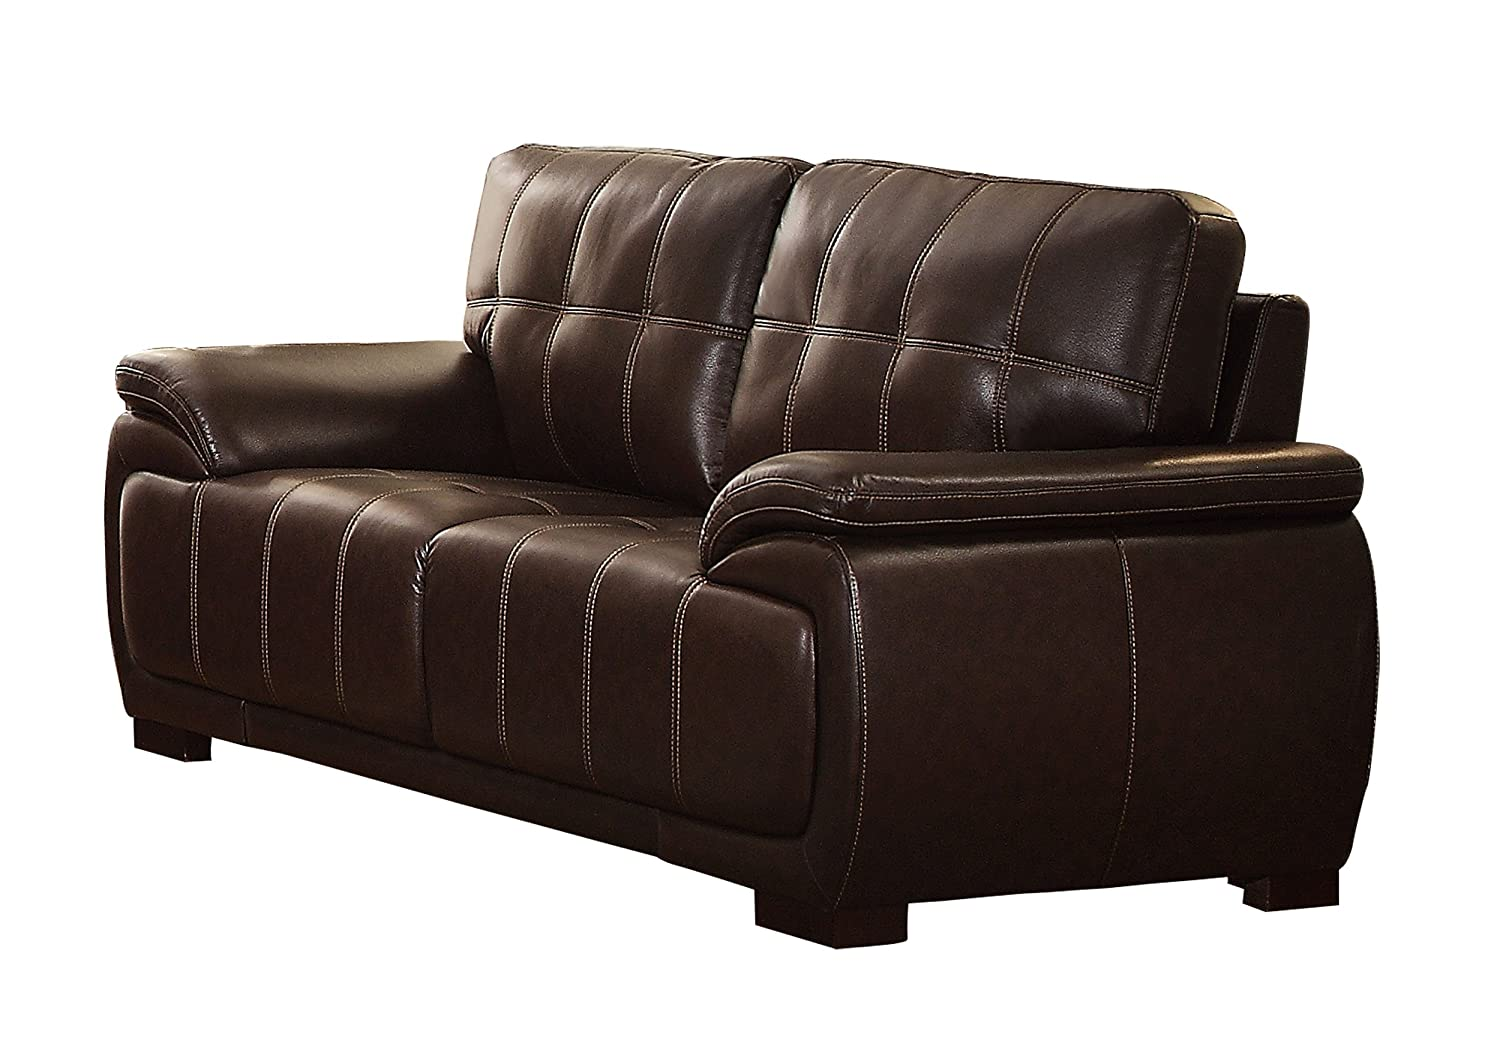 Homelegance Alpena Modern Comfortable Love Seat AireHyde Breathable Faux Leather - Dark Brown